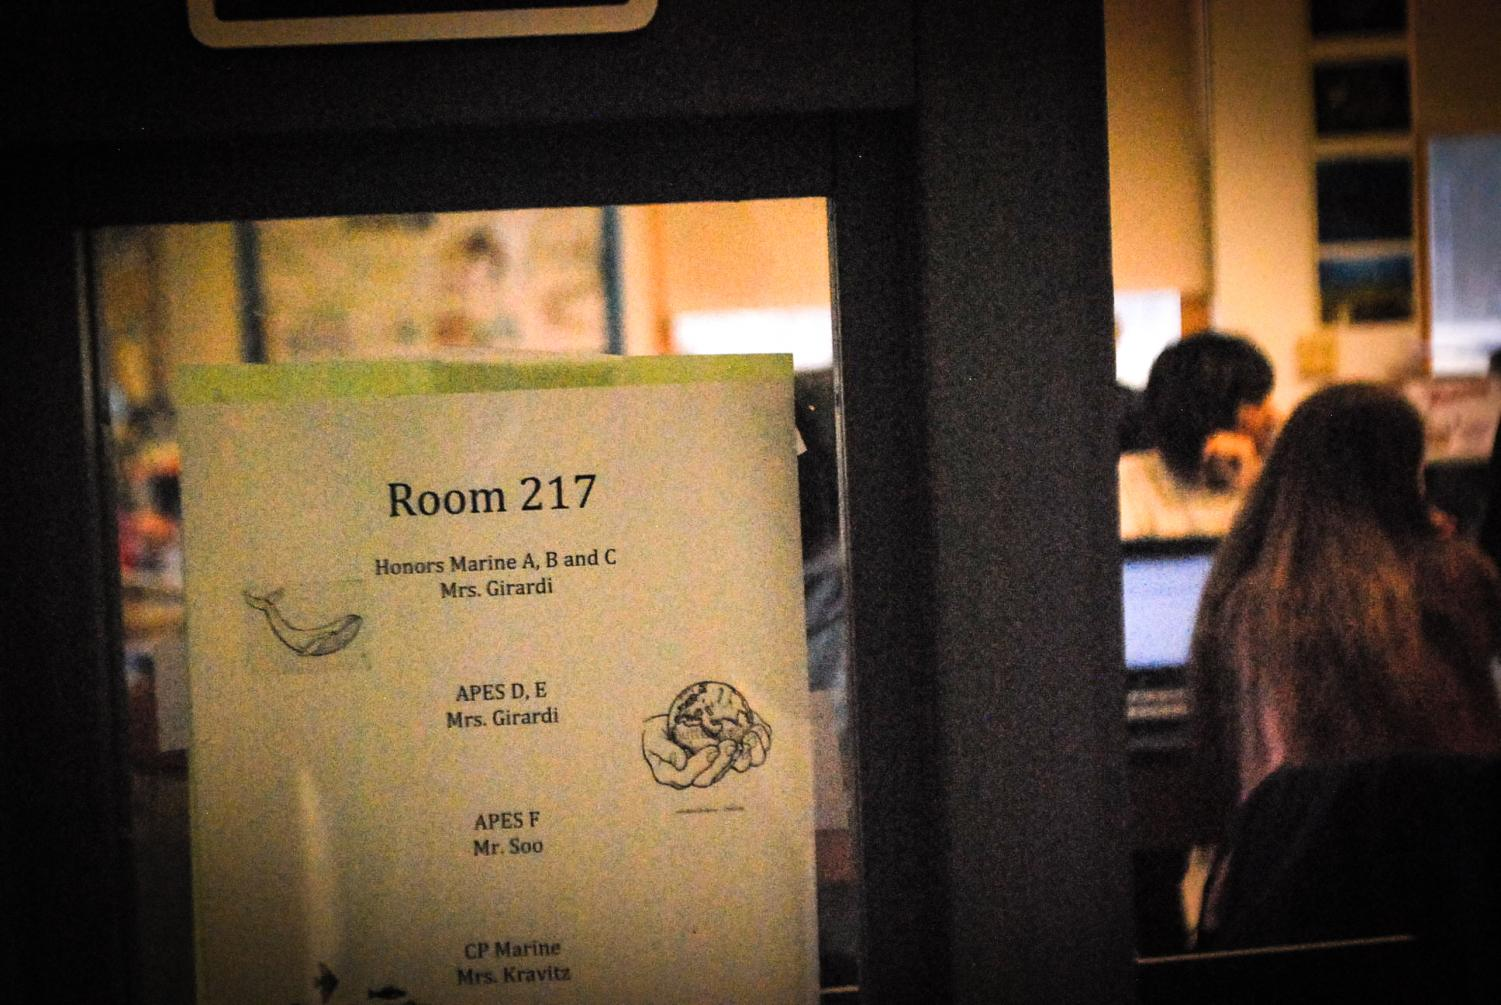 A close-up shot on Alt-ed's room 217.